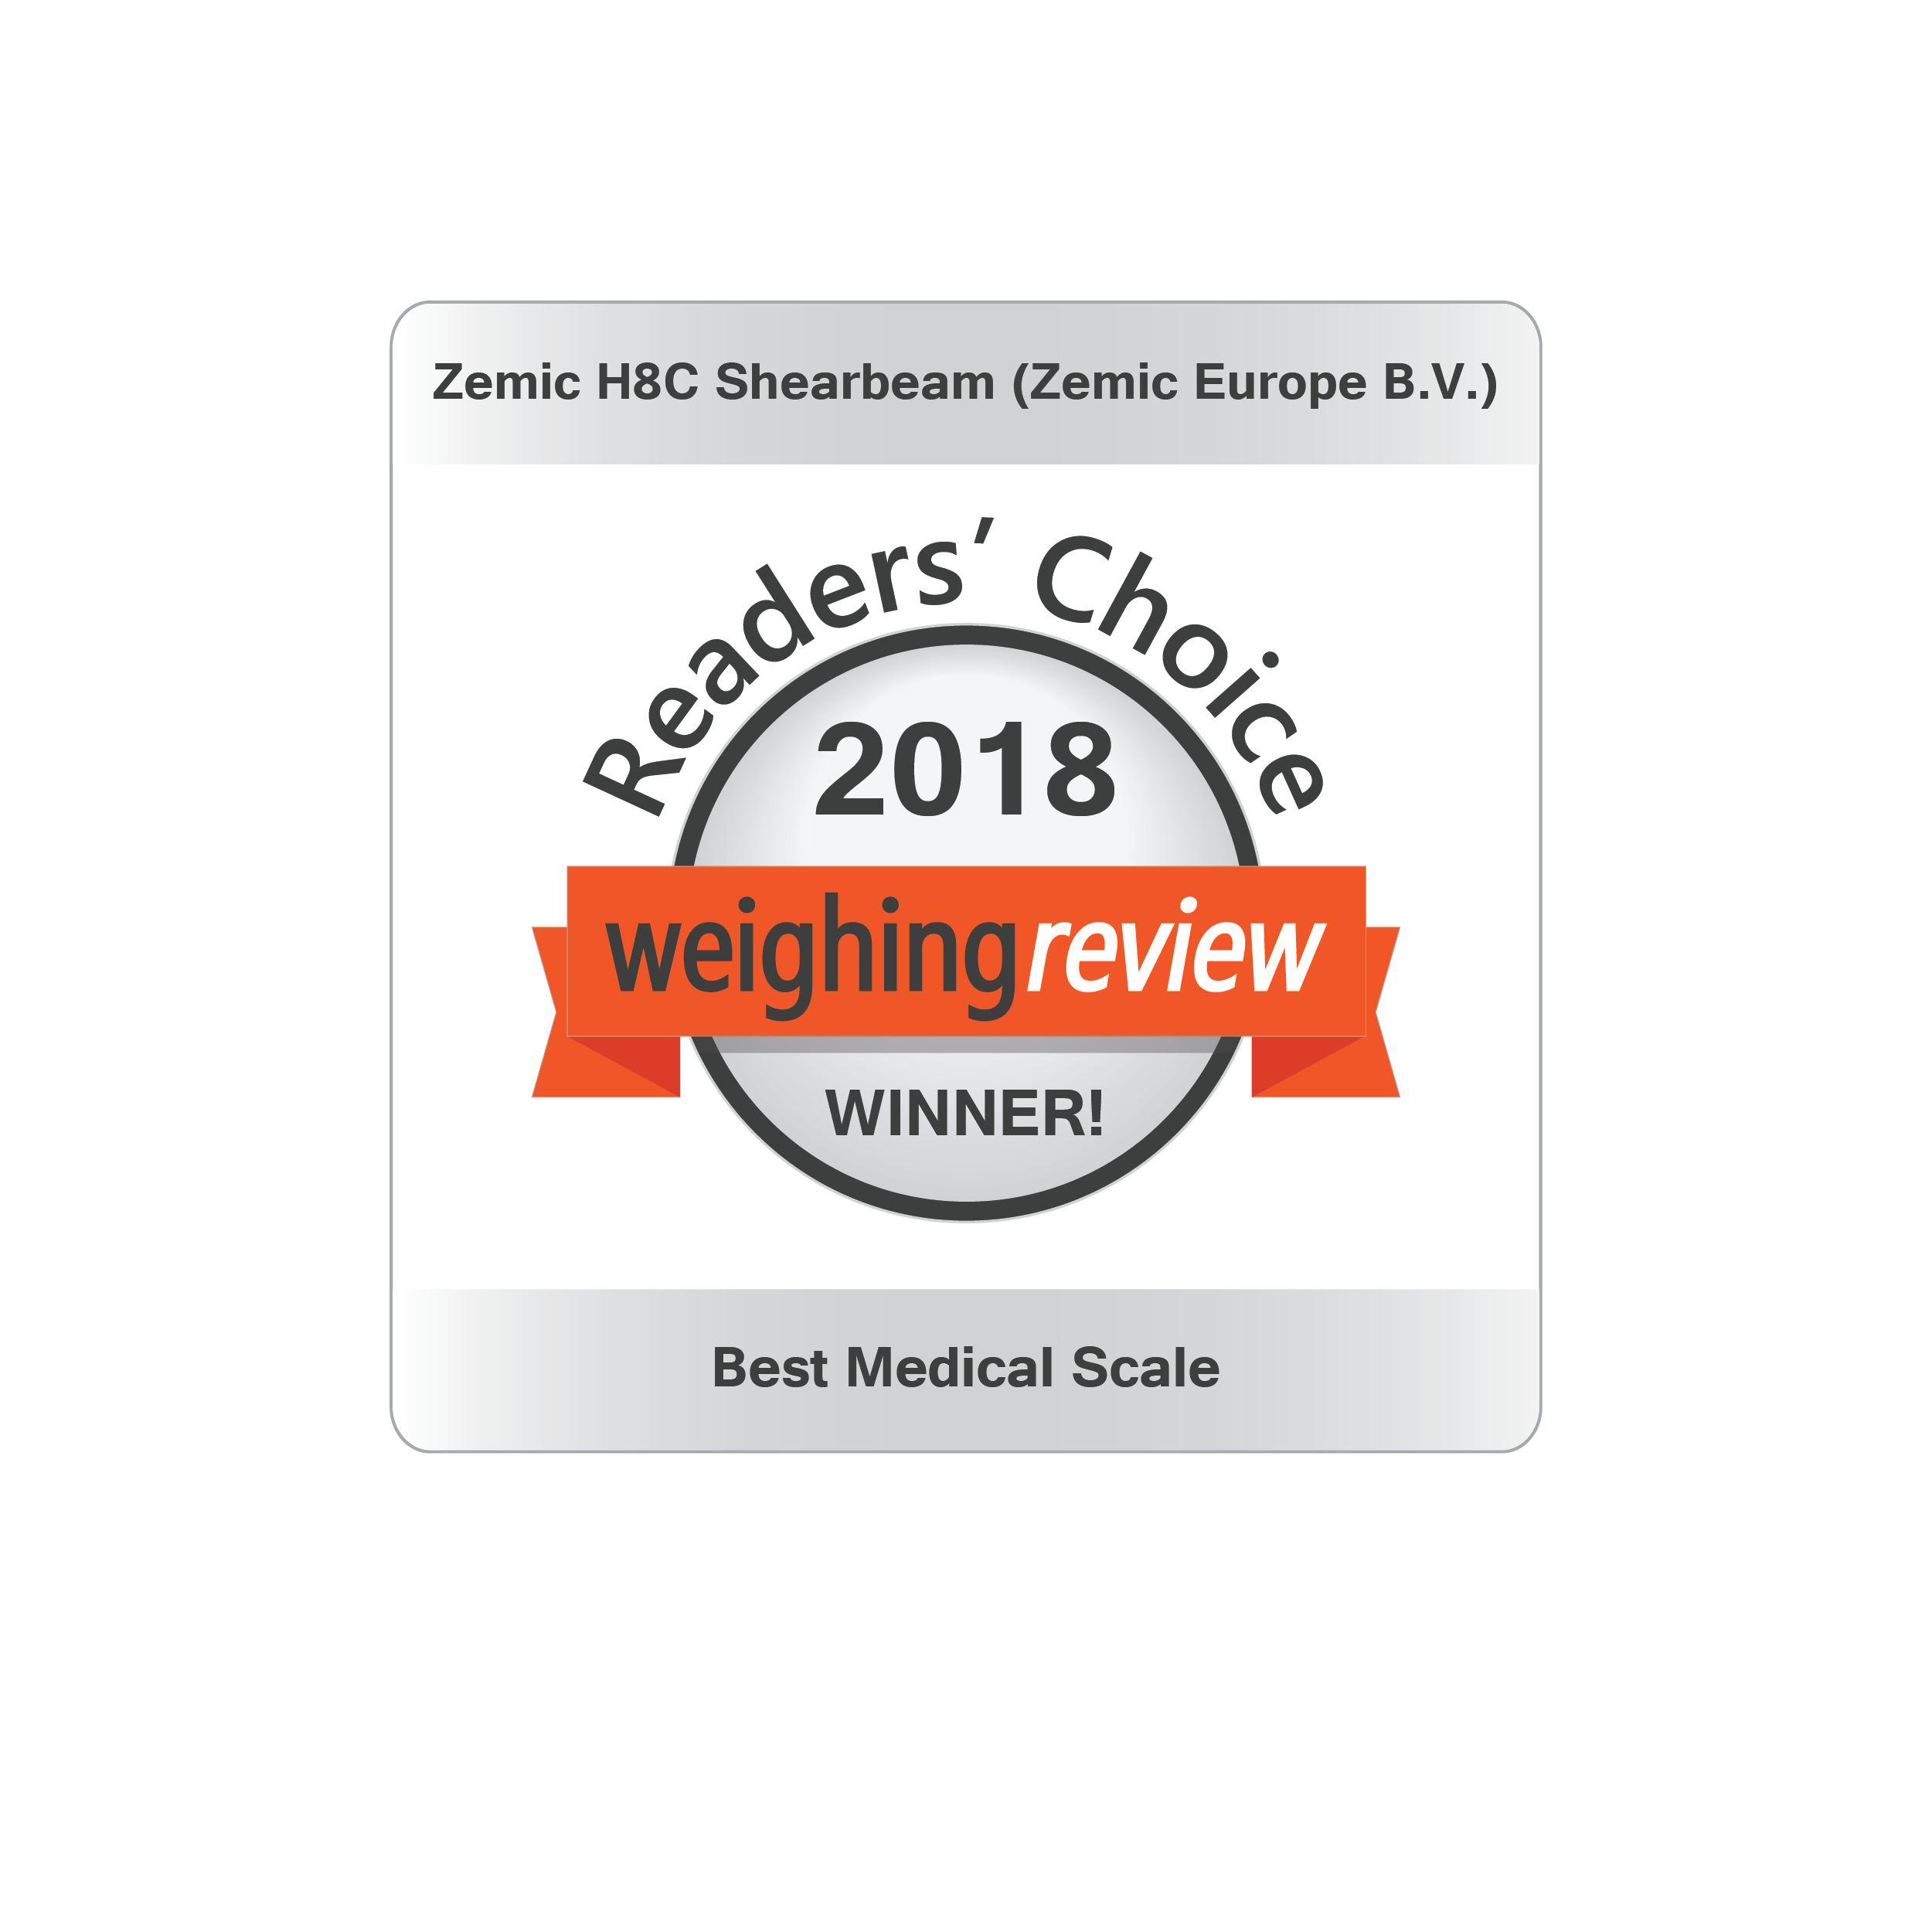 Zemic-medicalaward-weighingreview